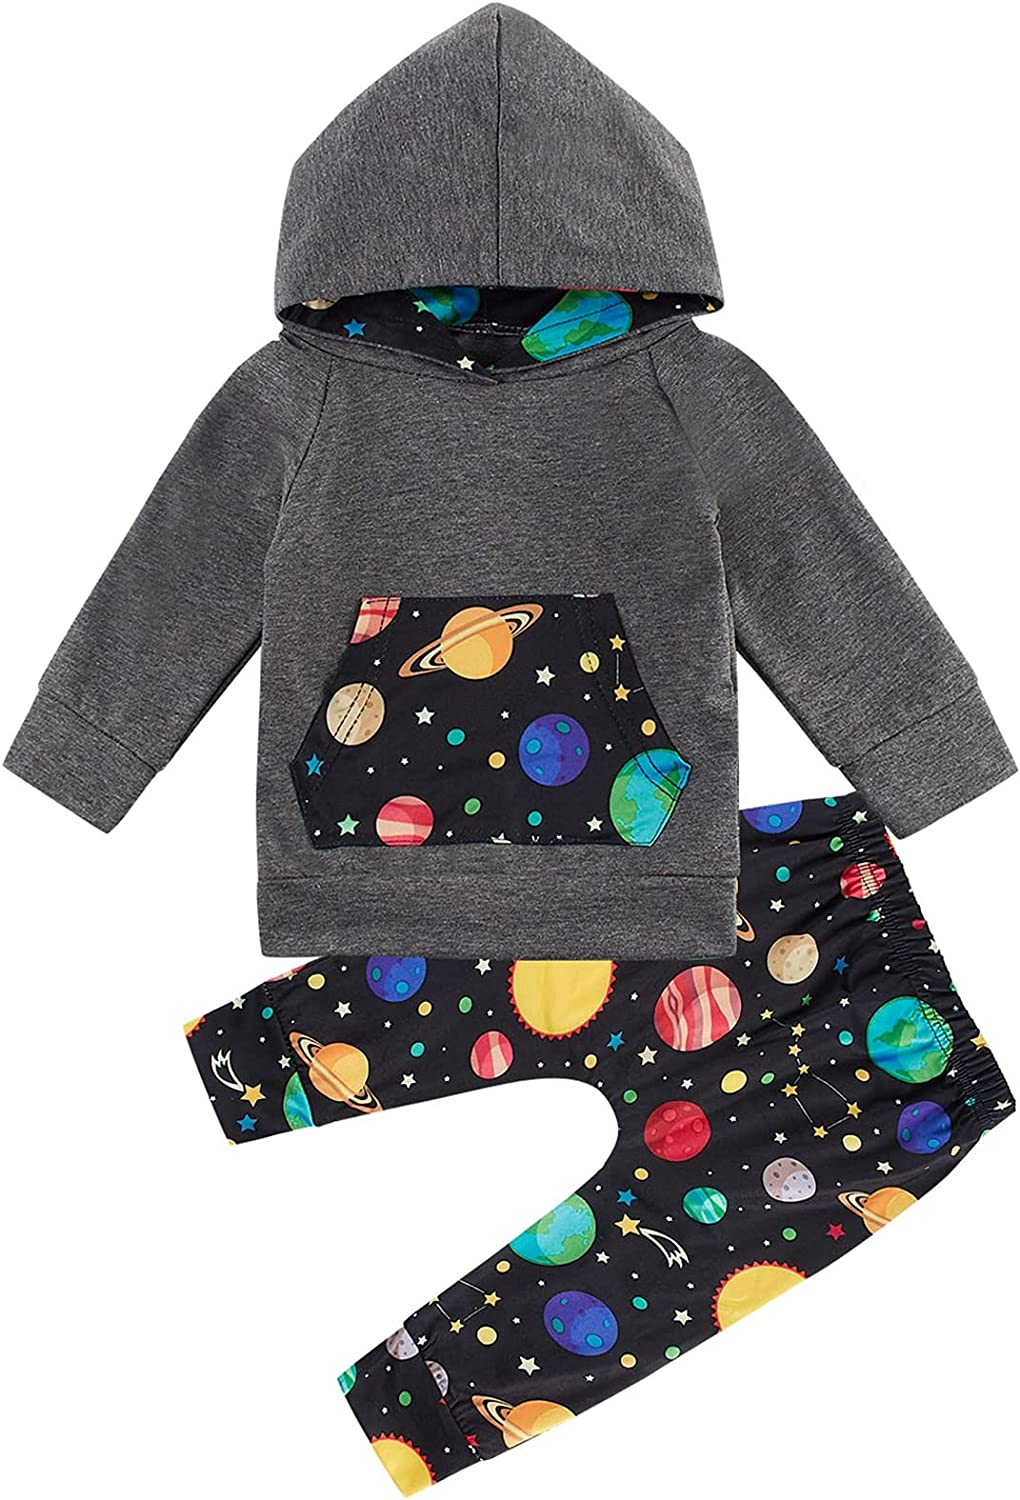 Kids4ever 0-24M Baby Long Sleeve Hoodies + Sweatsuit Pants Toddler Boys Animal Graphic Outfits Sets